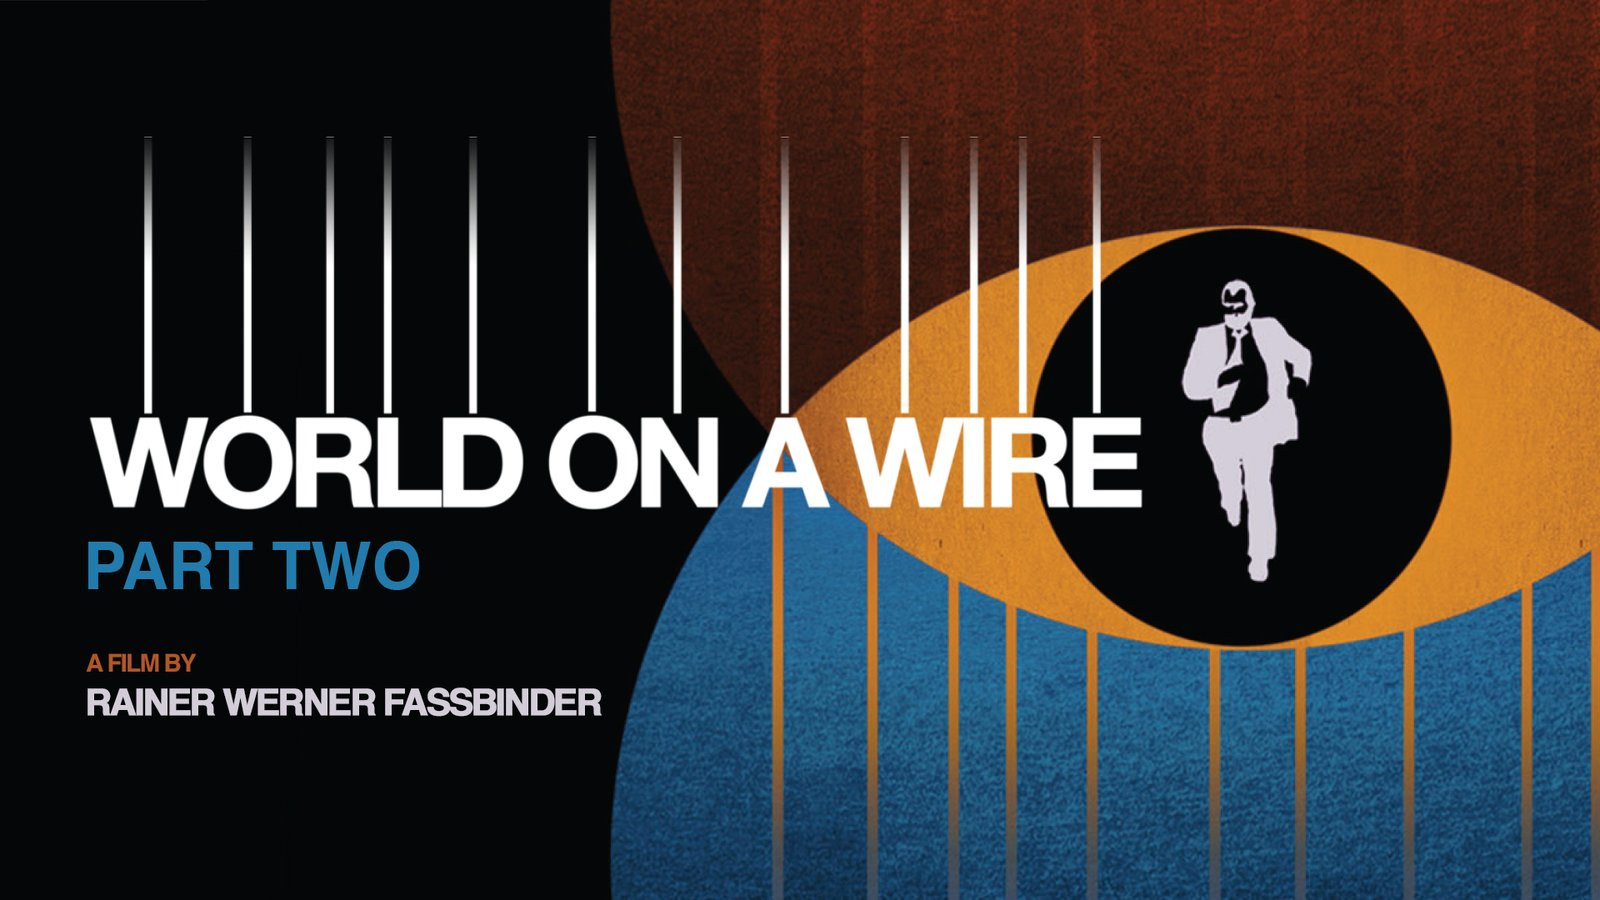 World on a Wire Part 2